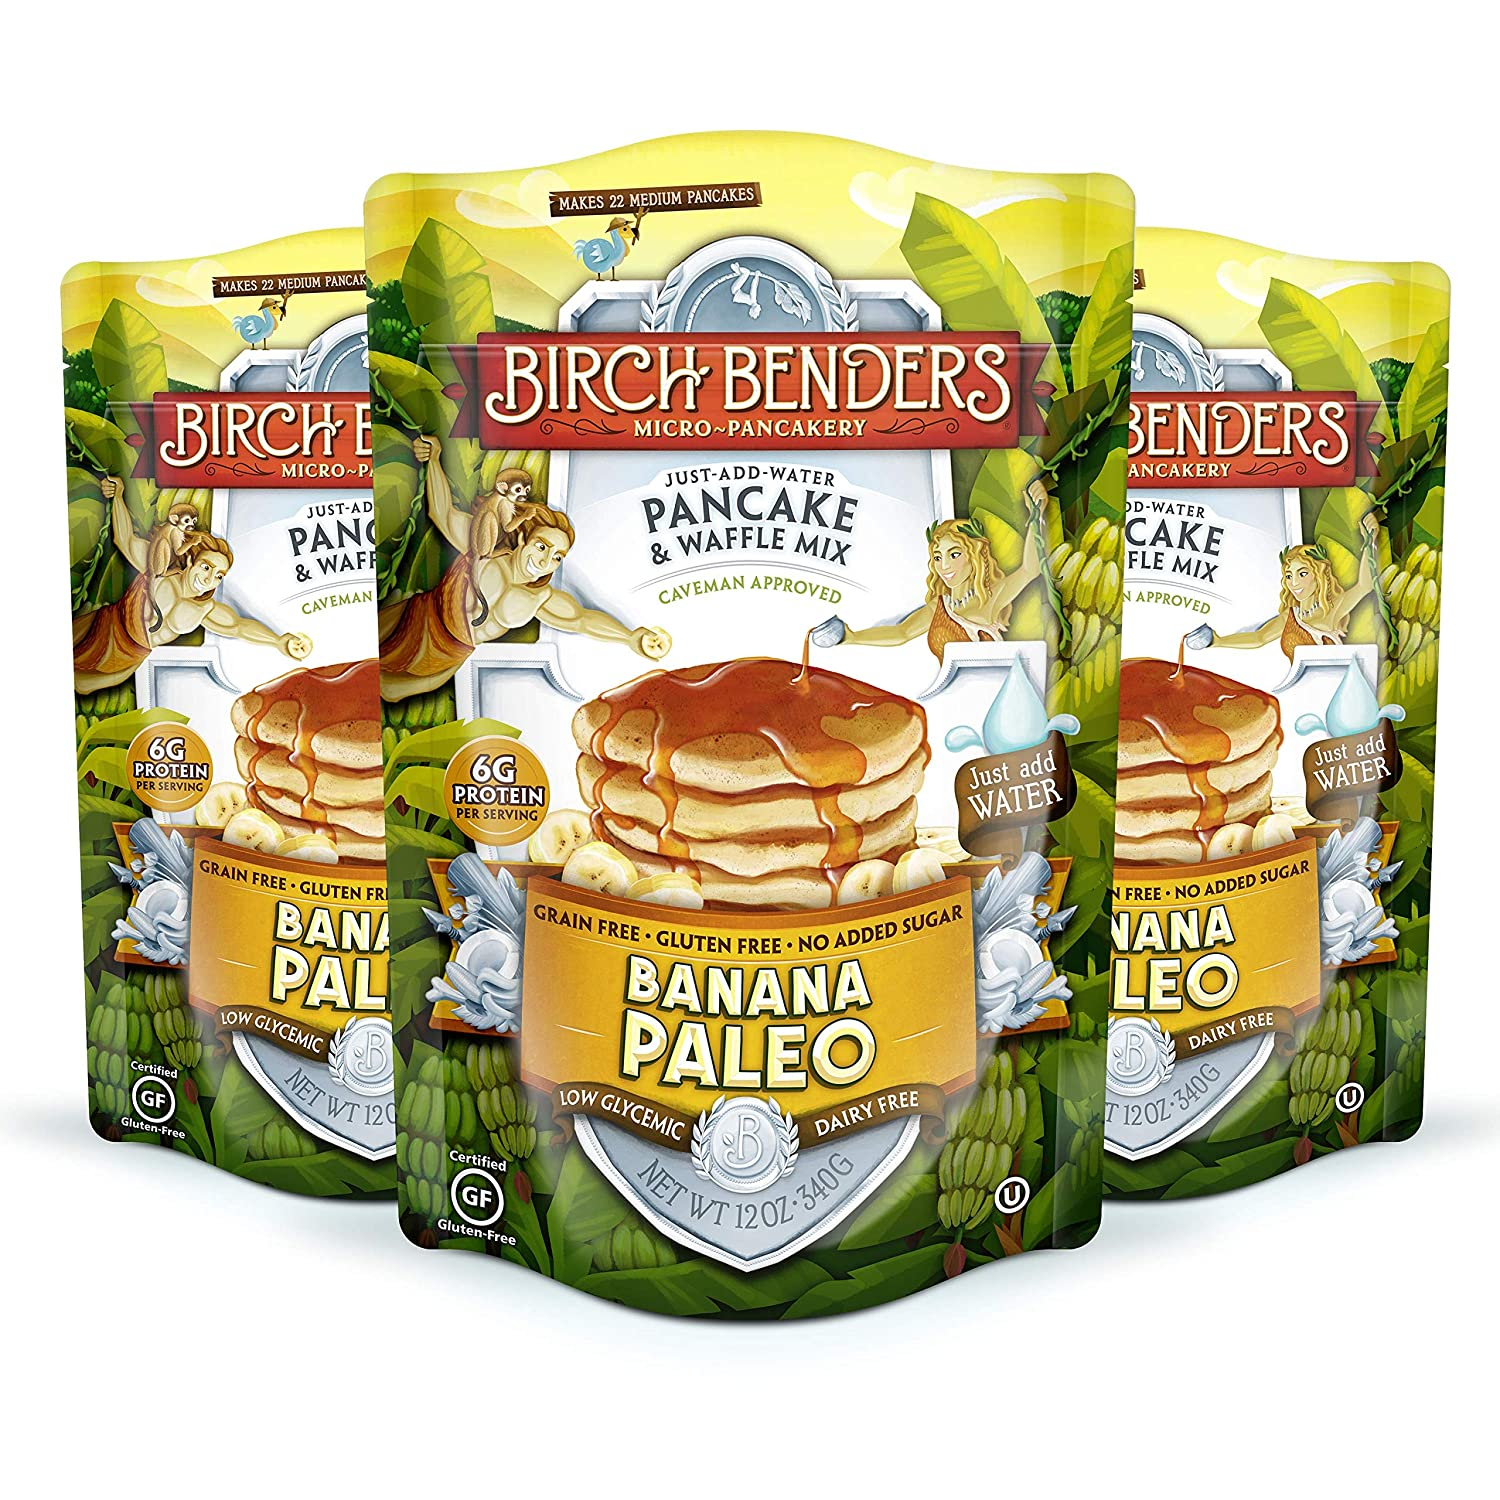 Banana Paleo Pancake & Waffle Mix By Birch Benders, Gluten Free, 6g Protein, Grain Free, No Added Sugar, Non-GMO, All Natural, Just Add Water, 12 Oz Each, Pack of 3